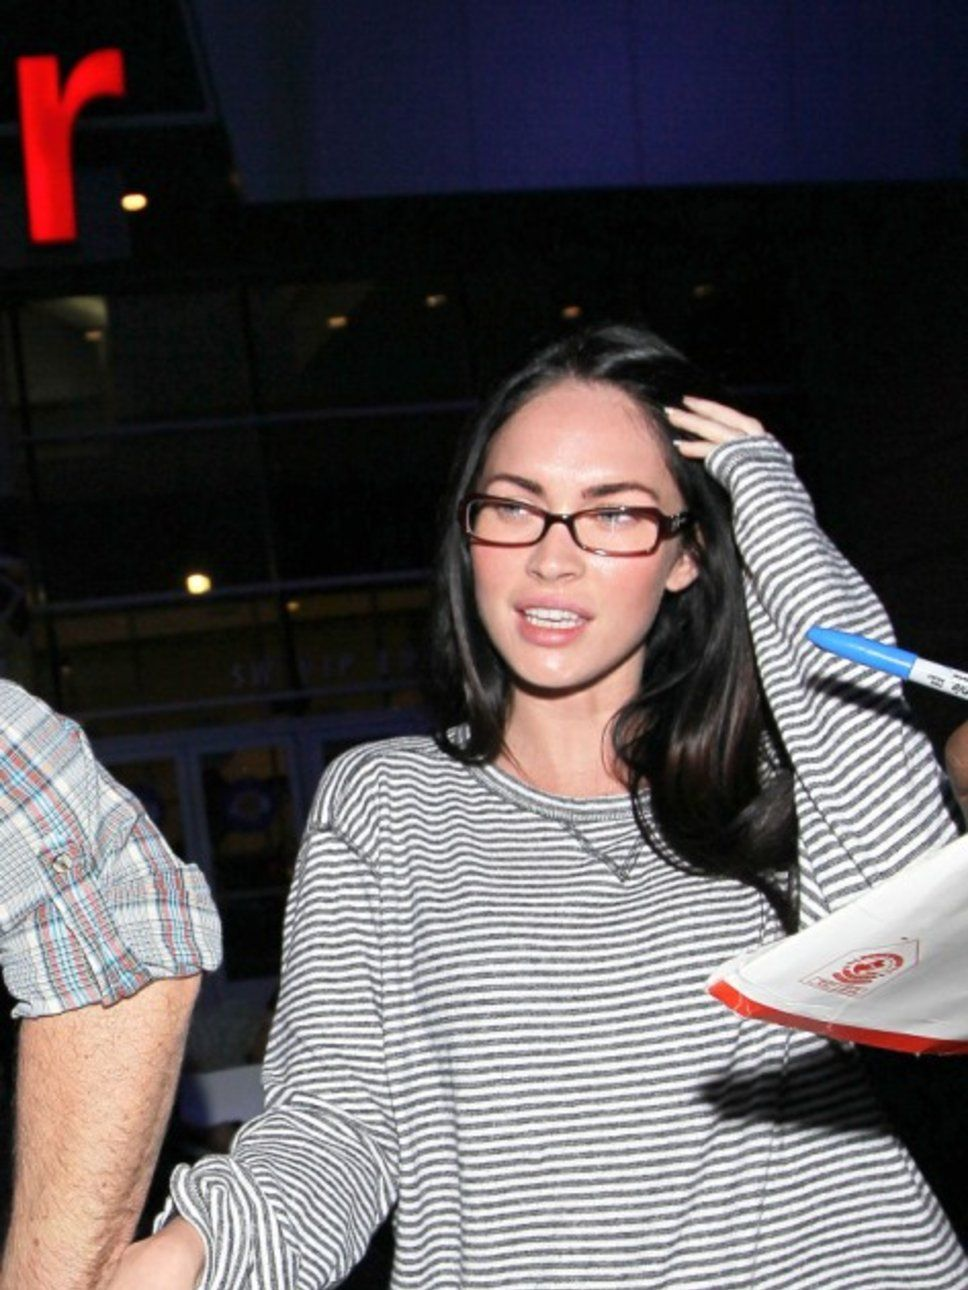 Glasses megan fox